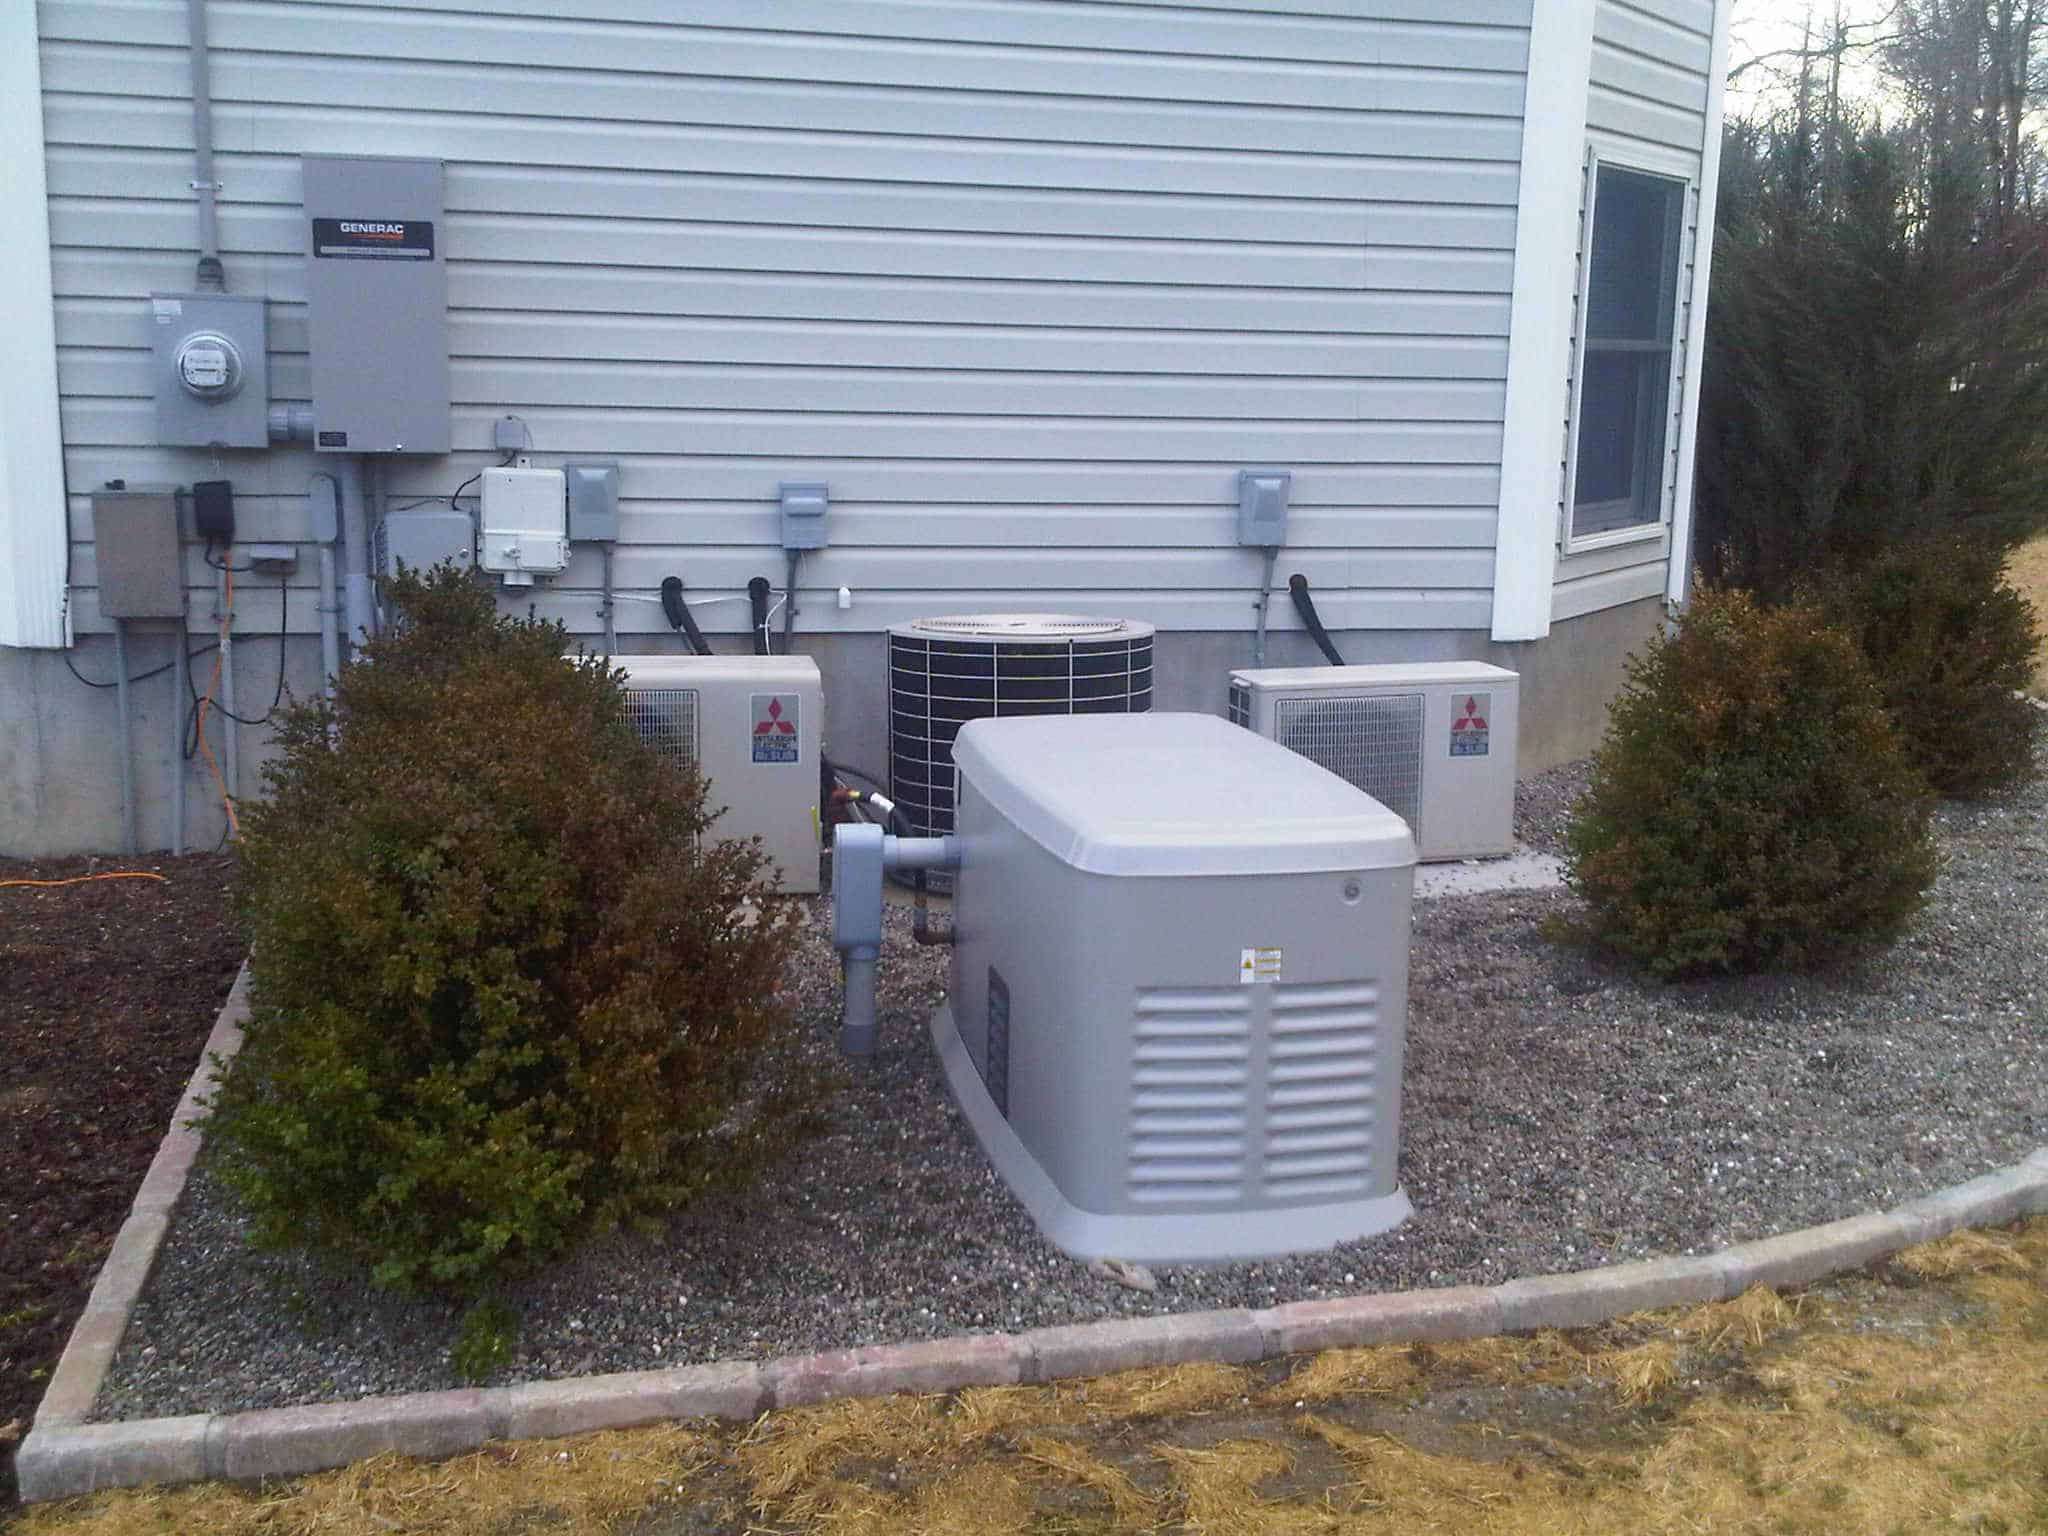 Standby Generators Protect Your Home During Winter Power Outages